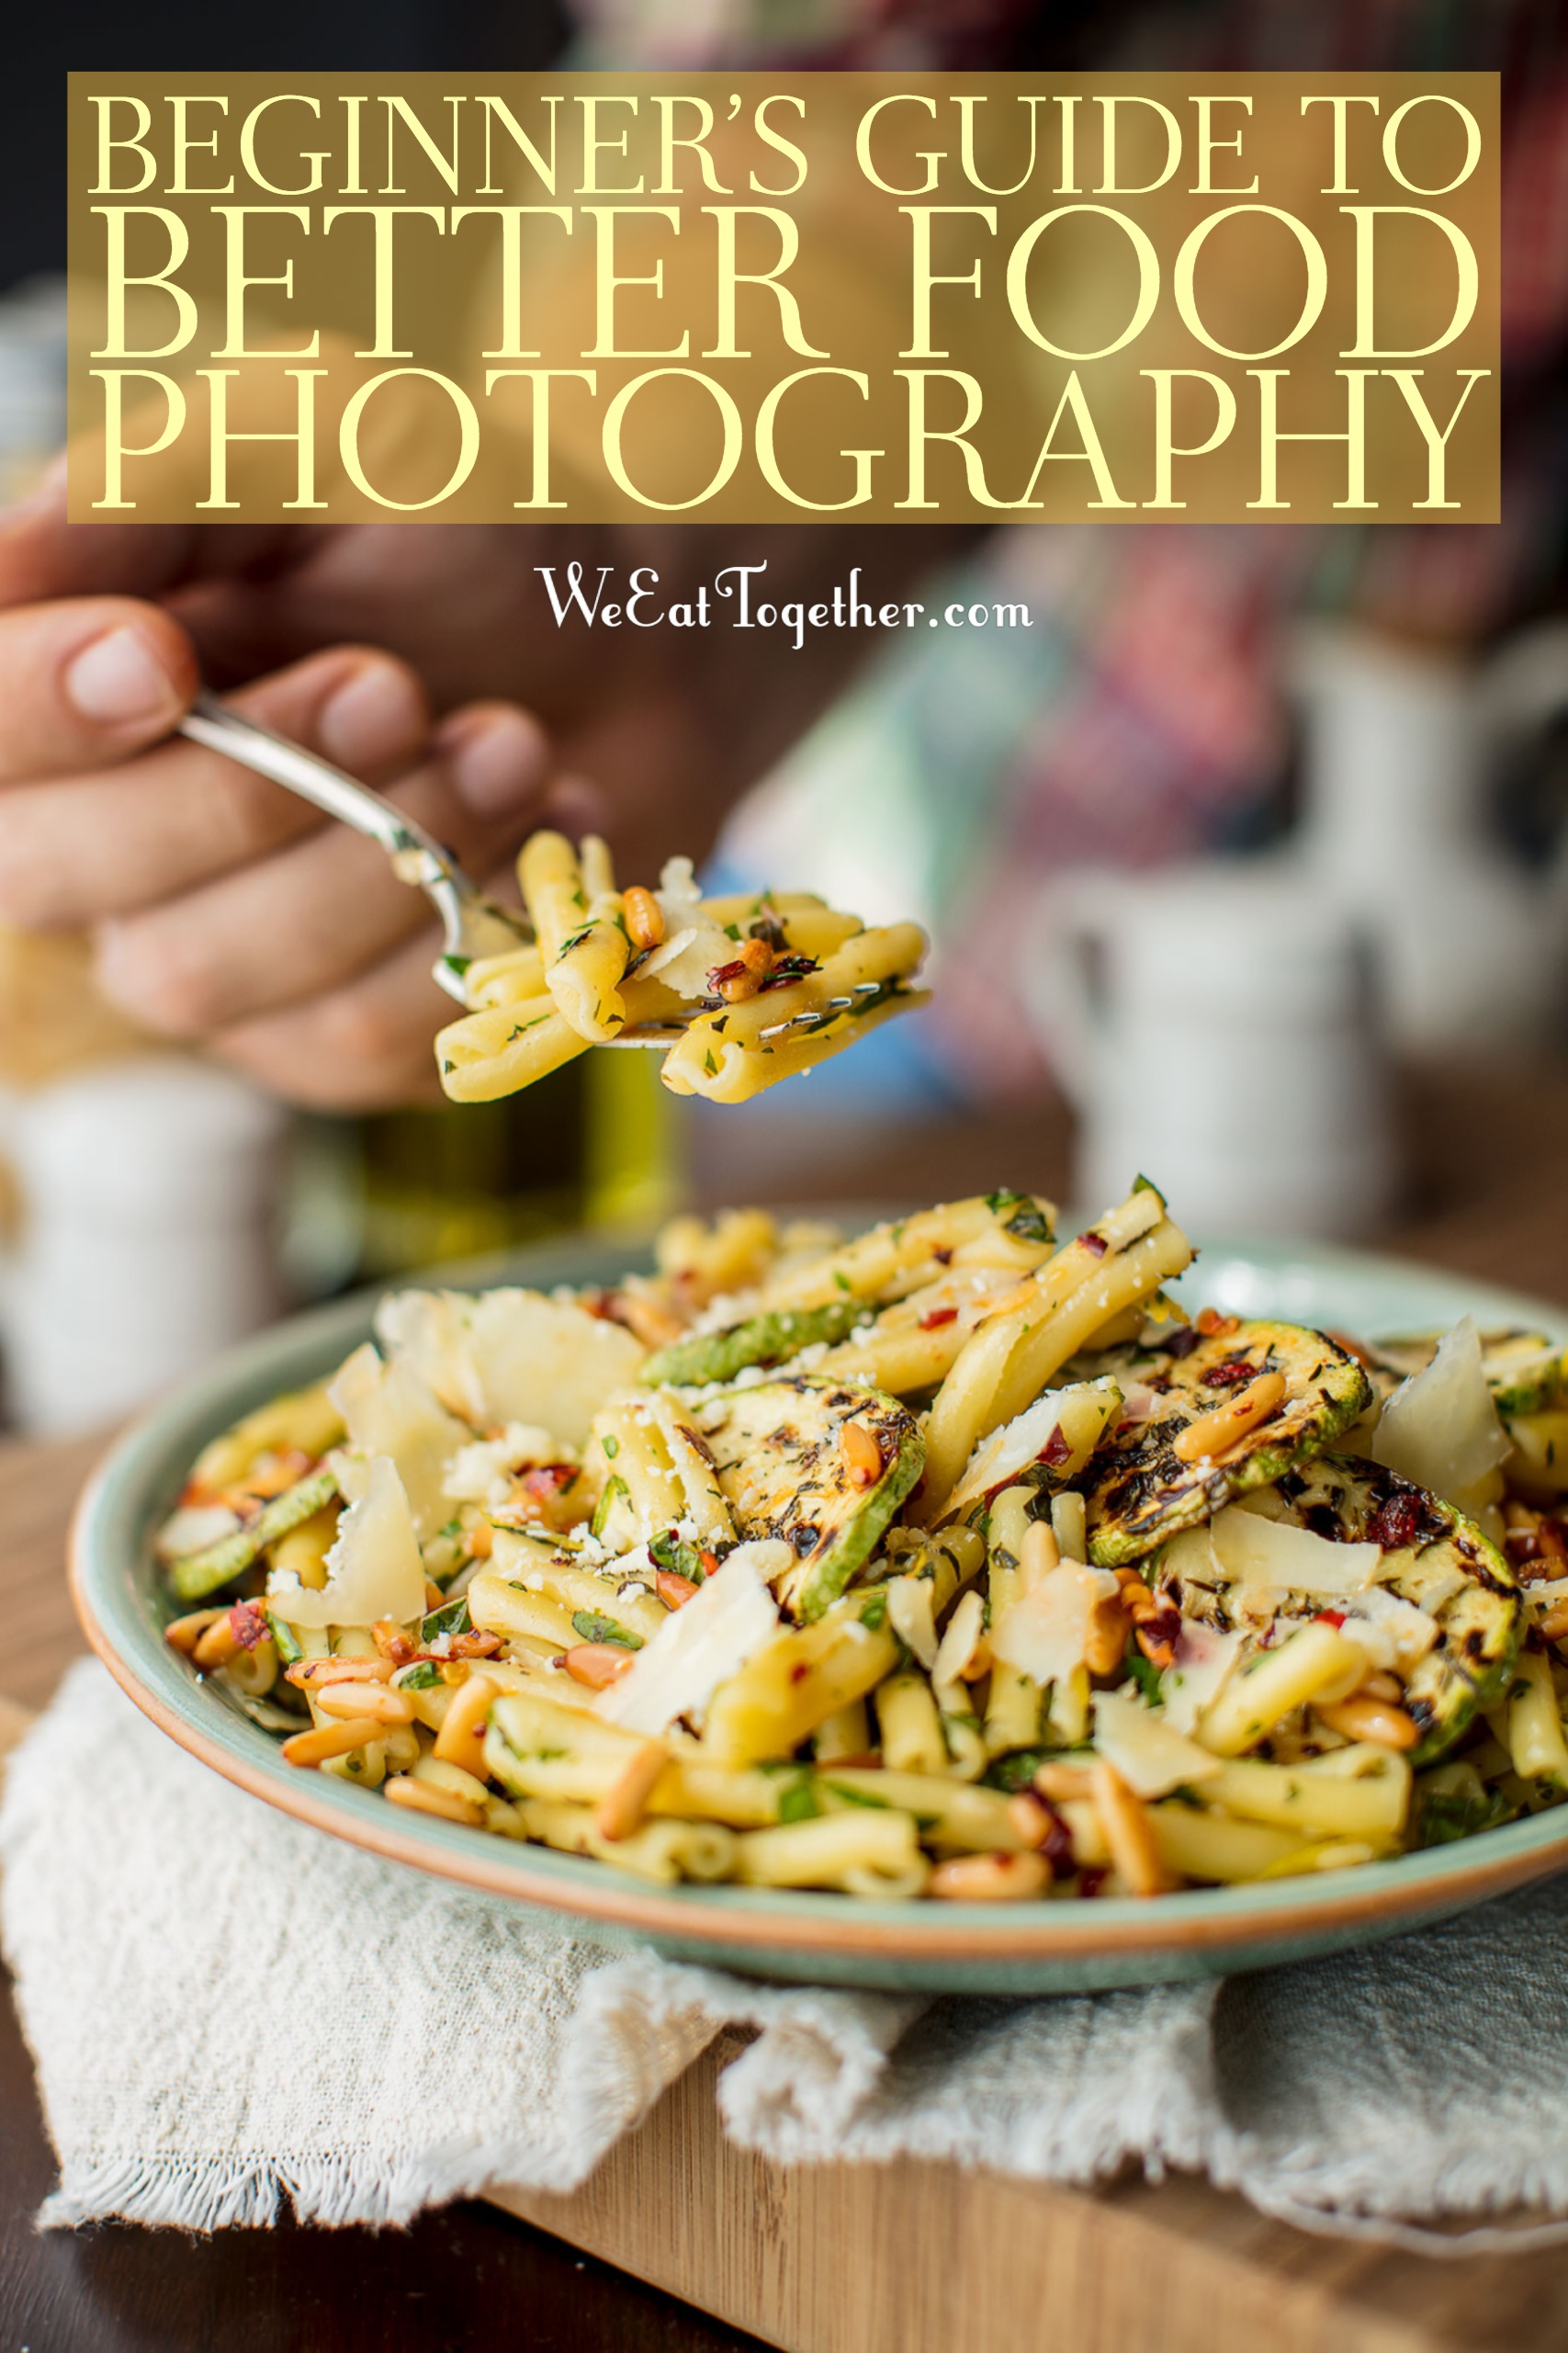 Food Photography Tips A Beginners Guide To Better Food Photography